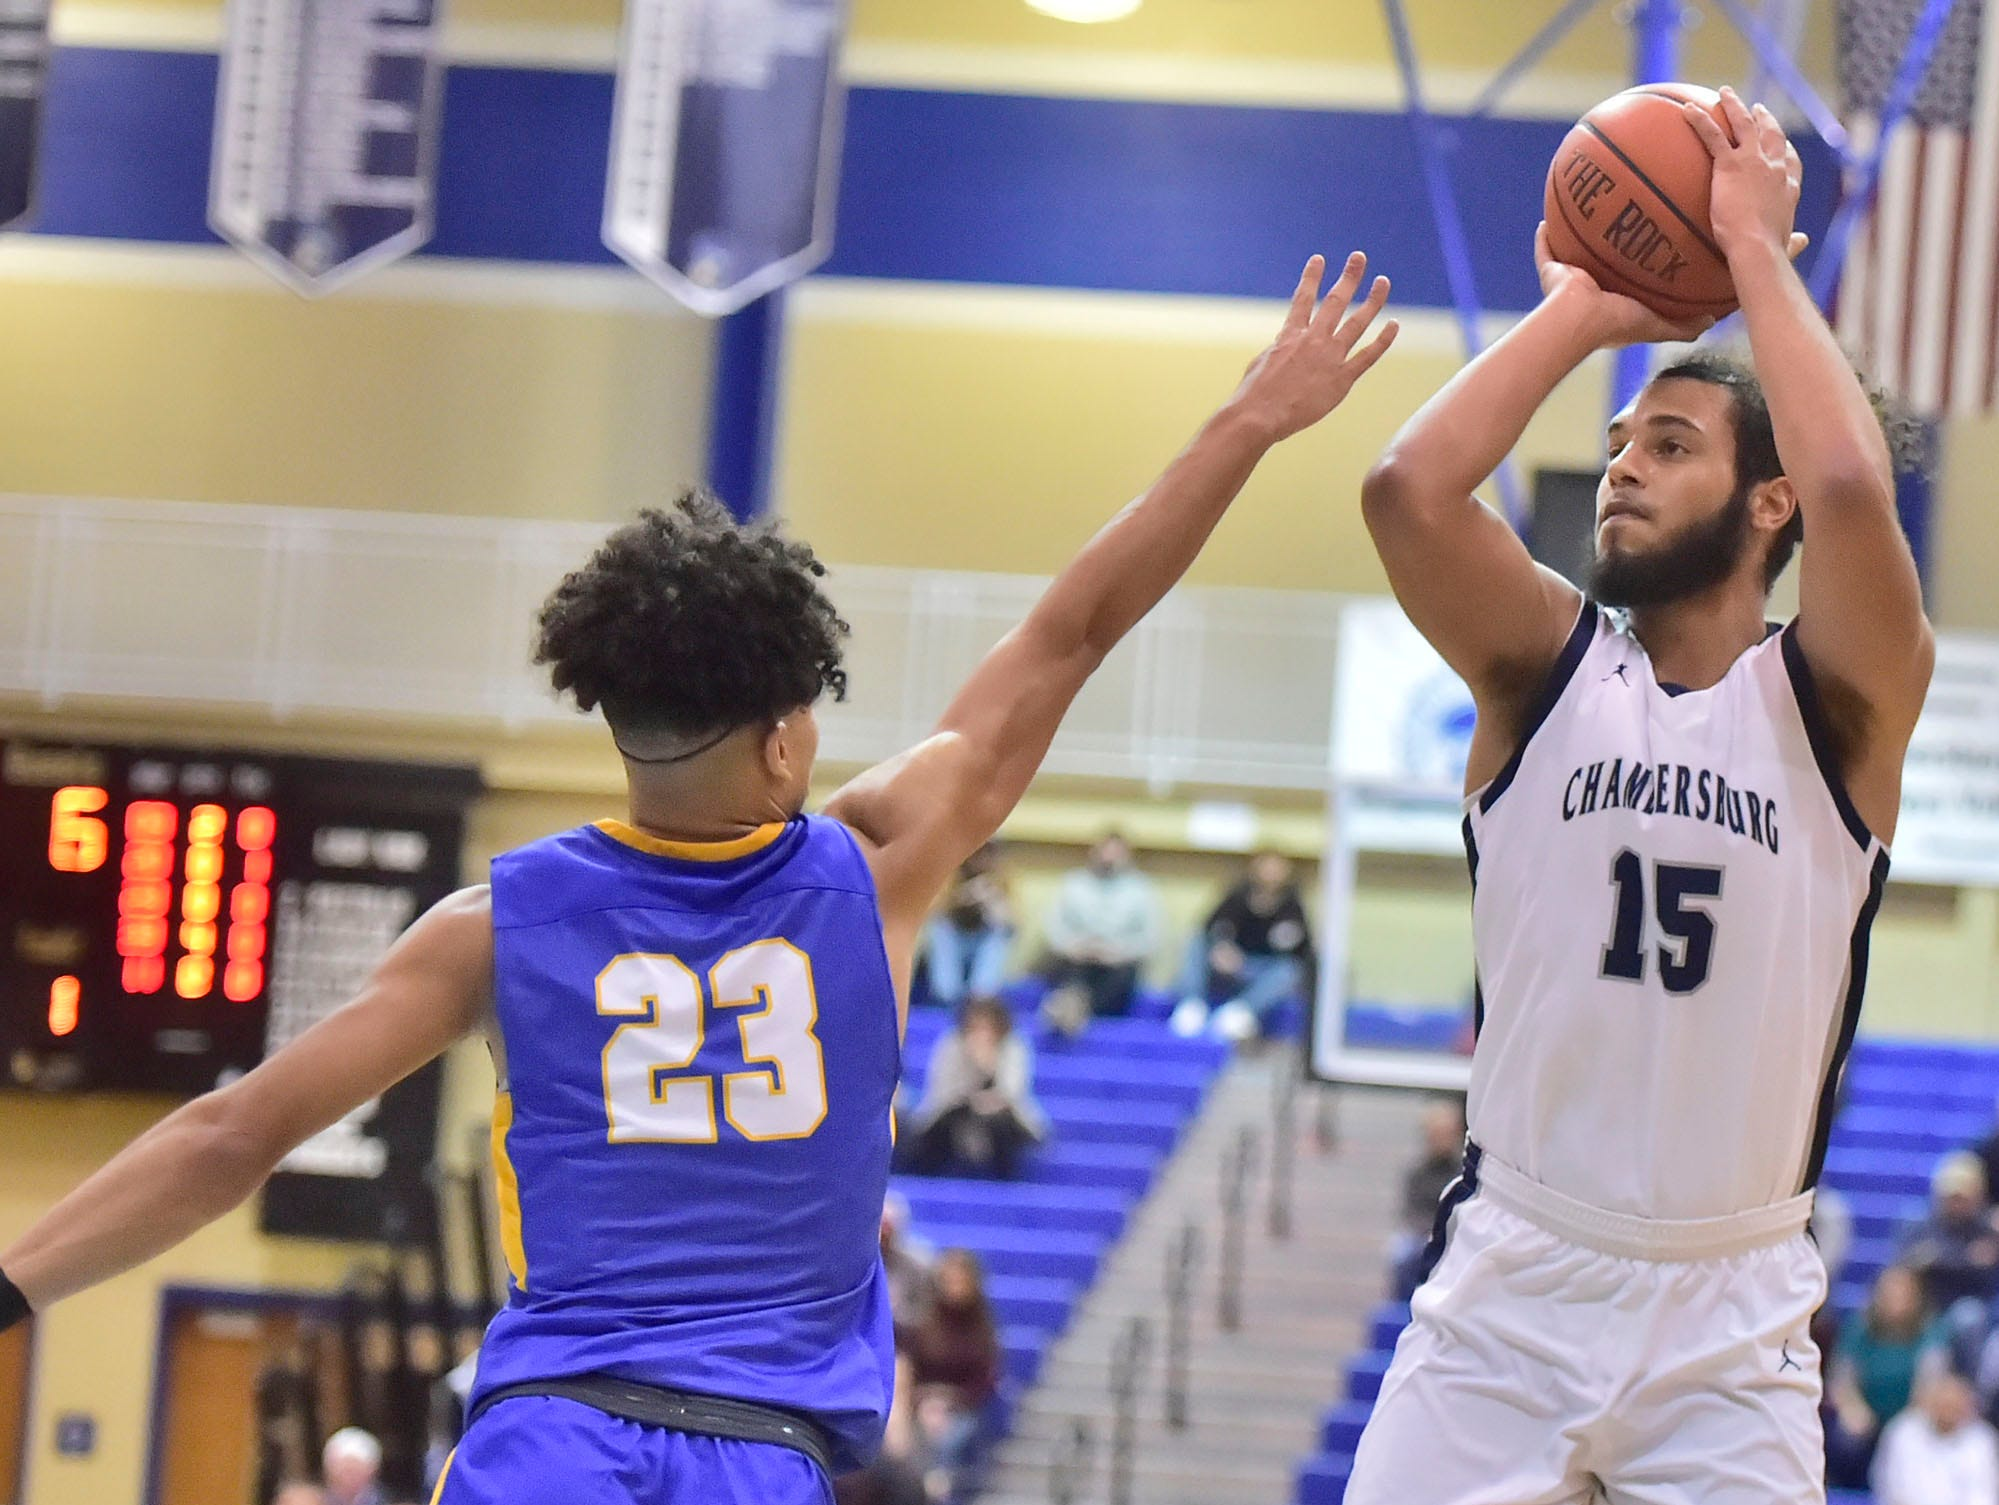 Chambersburg's Tyler Collier (15) shoots over Jay Alvarez (23) of Waynesboro during the finals at Franklin County Tip-Off Tournament, Saturday, Dec. 8, 2018.